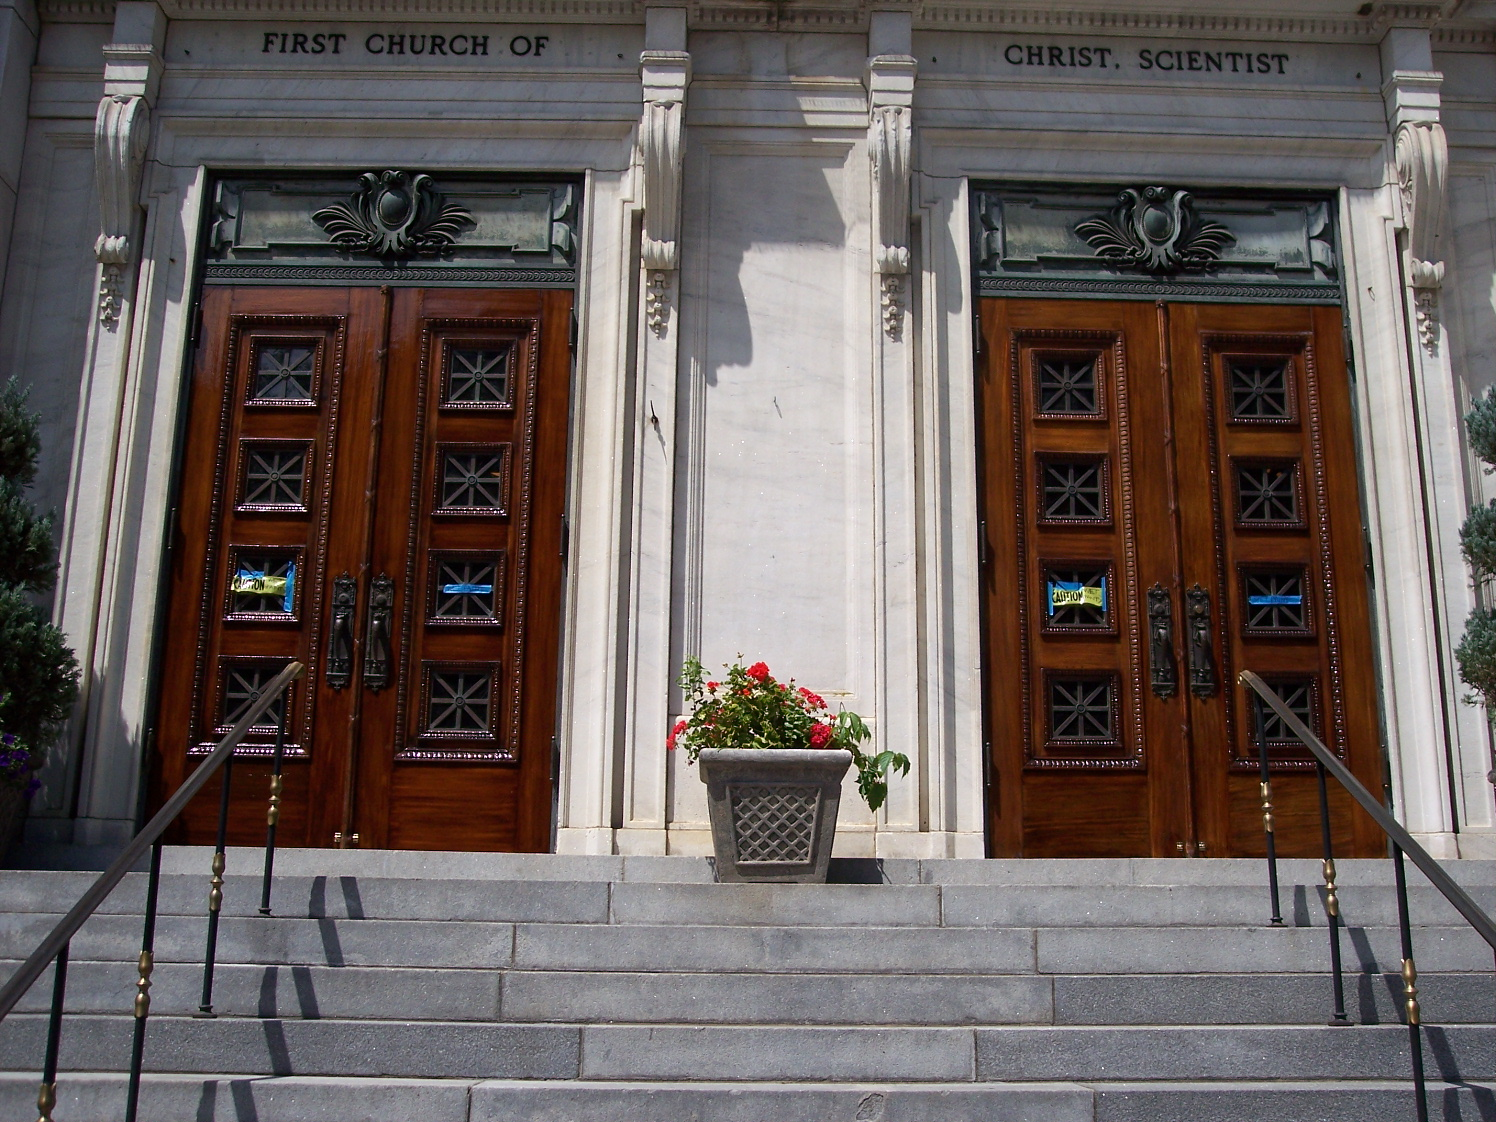 Front doors of First Church of Christ Scientist after restoration and refurbishing